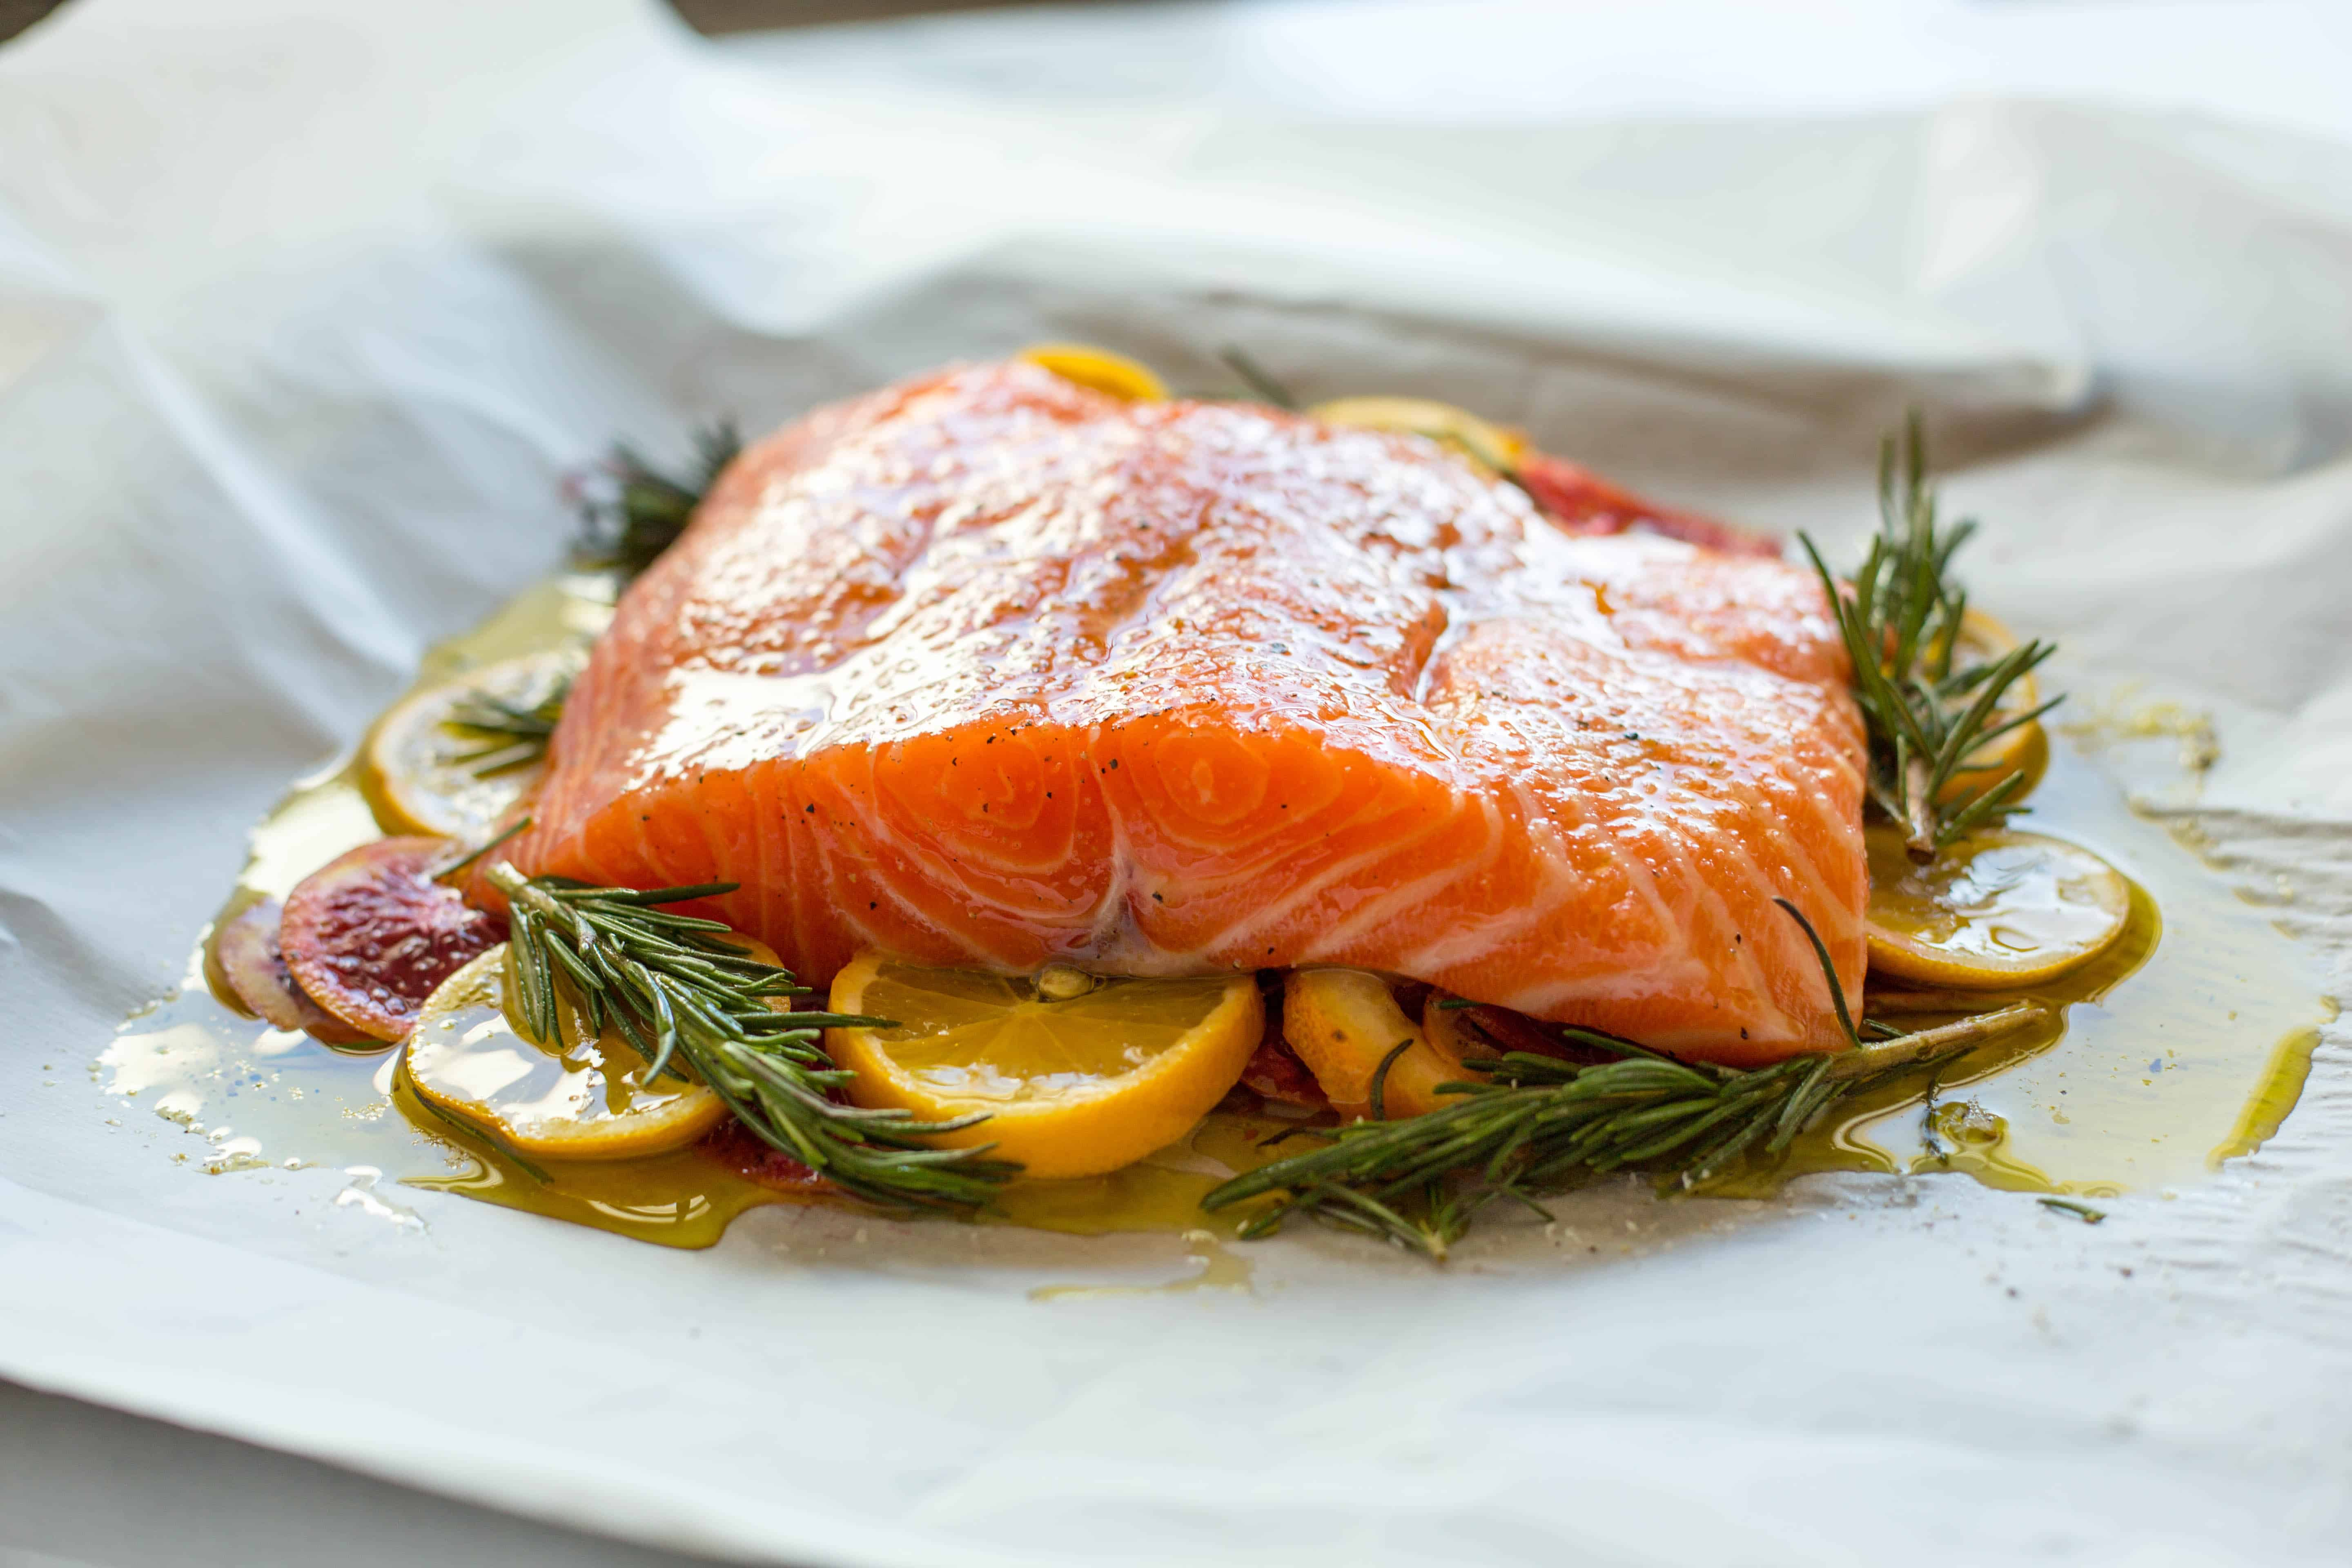 A salmon fillet on a bed of citrus and herbs ready to be wrapped in a parchment pocket.